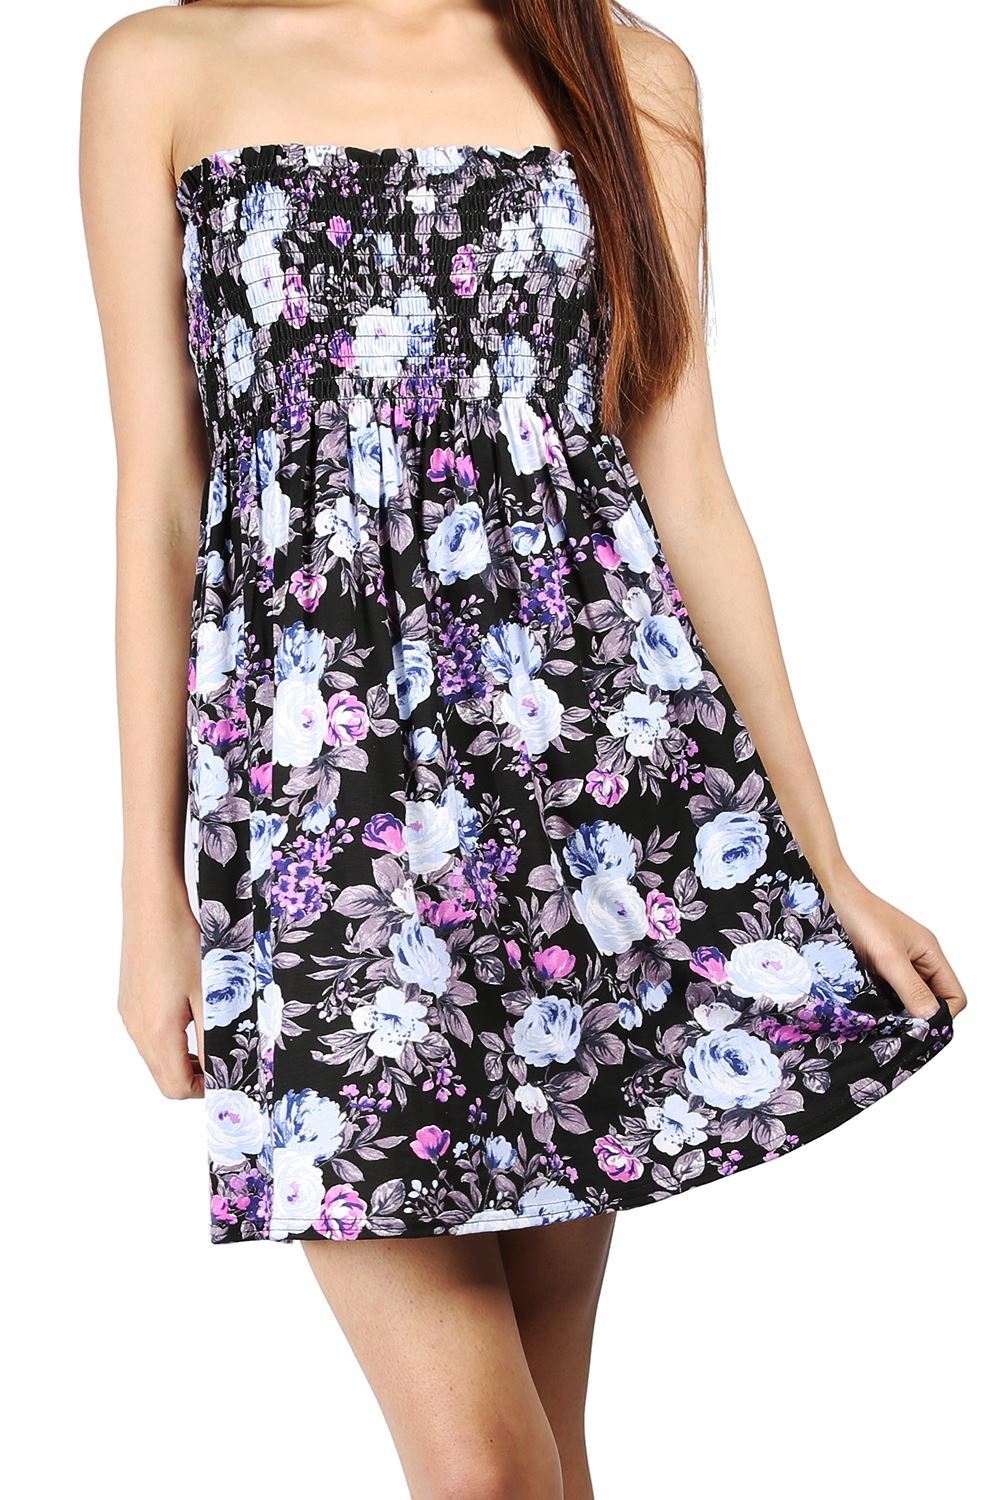 Tube Top Strapless Floral Maxi Dress – Posh At Play |Strapless Dress Top